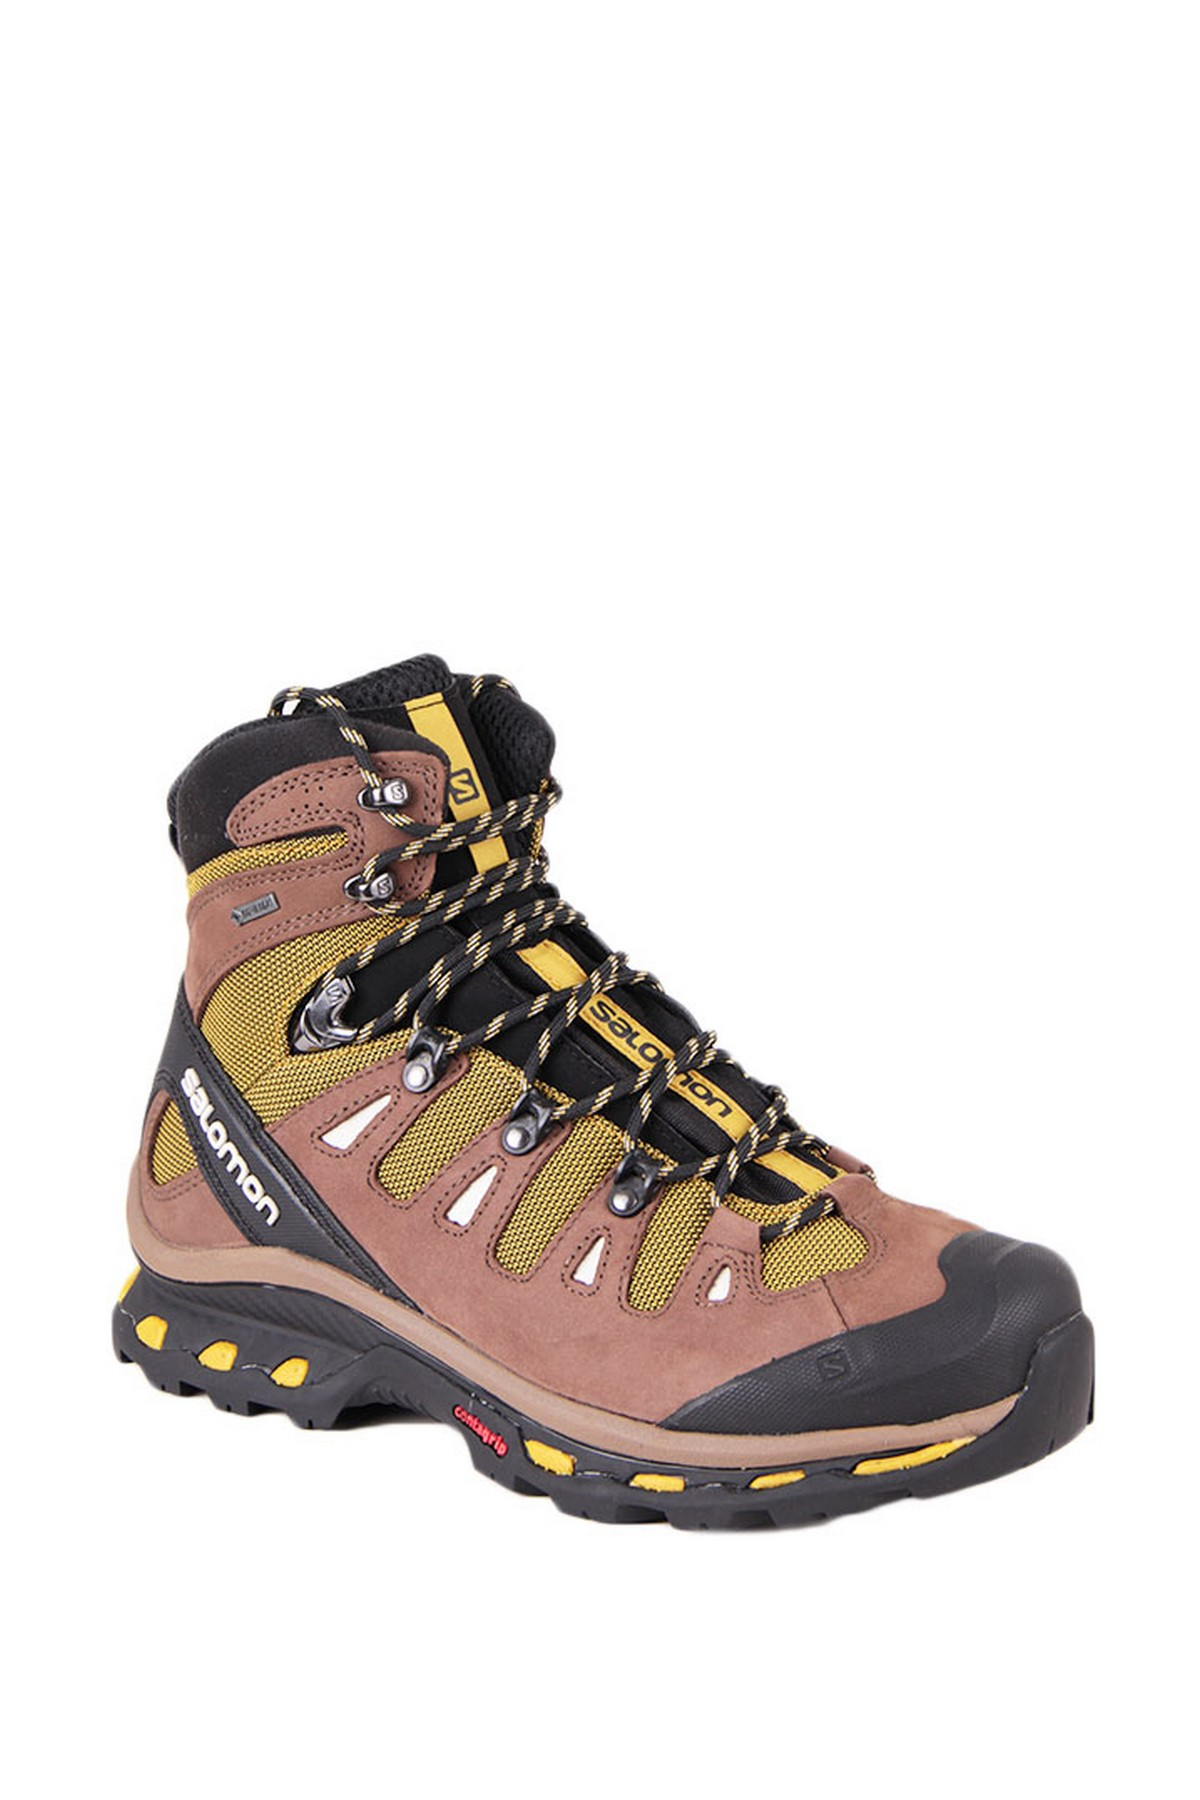 Salomon Quest 4D 2 GTX Outdoor Ayakkabı (L39026800)